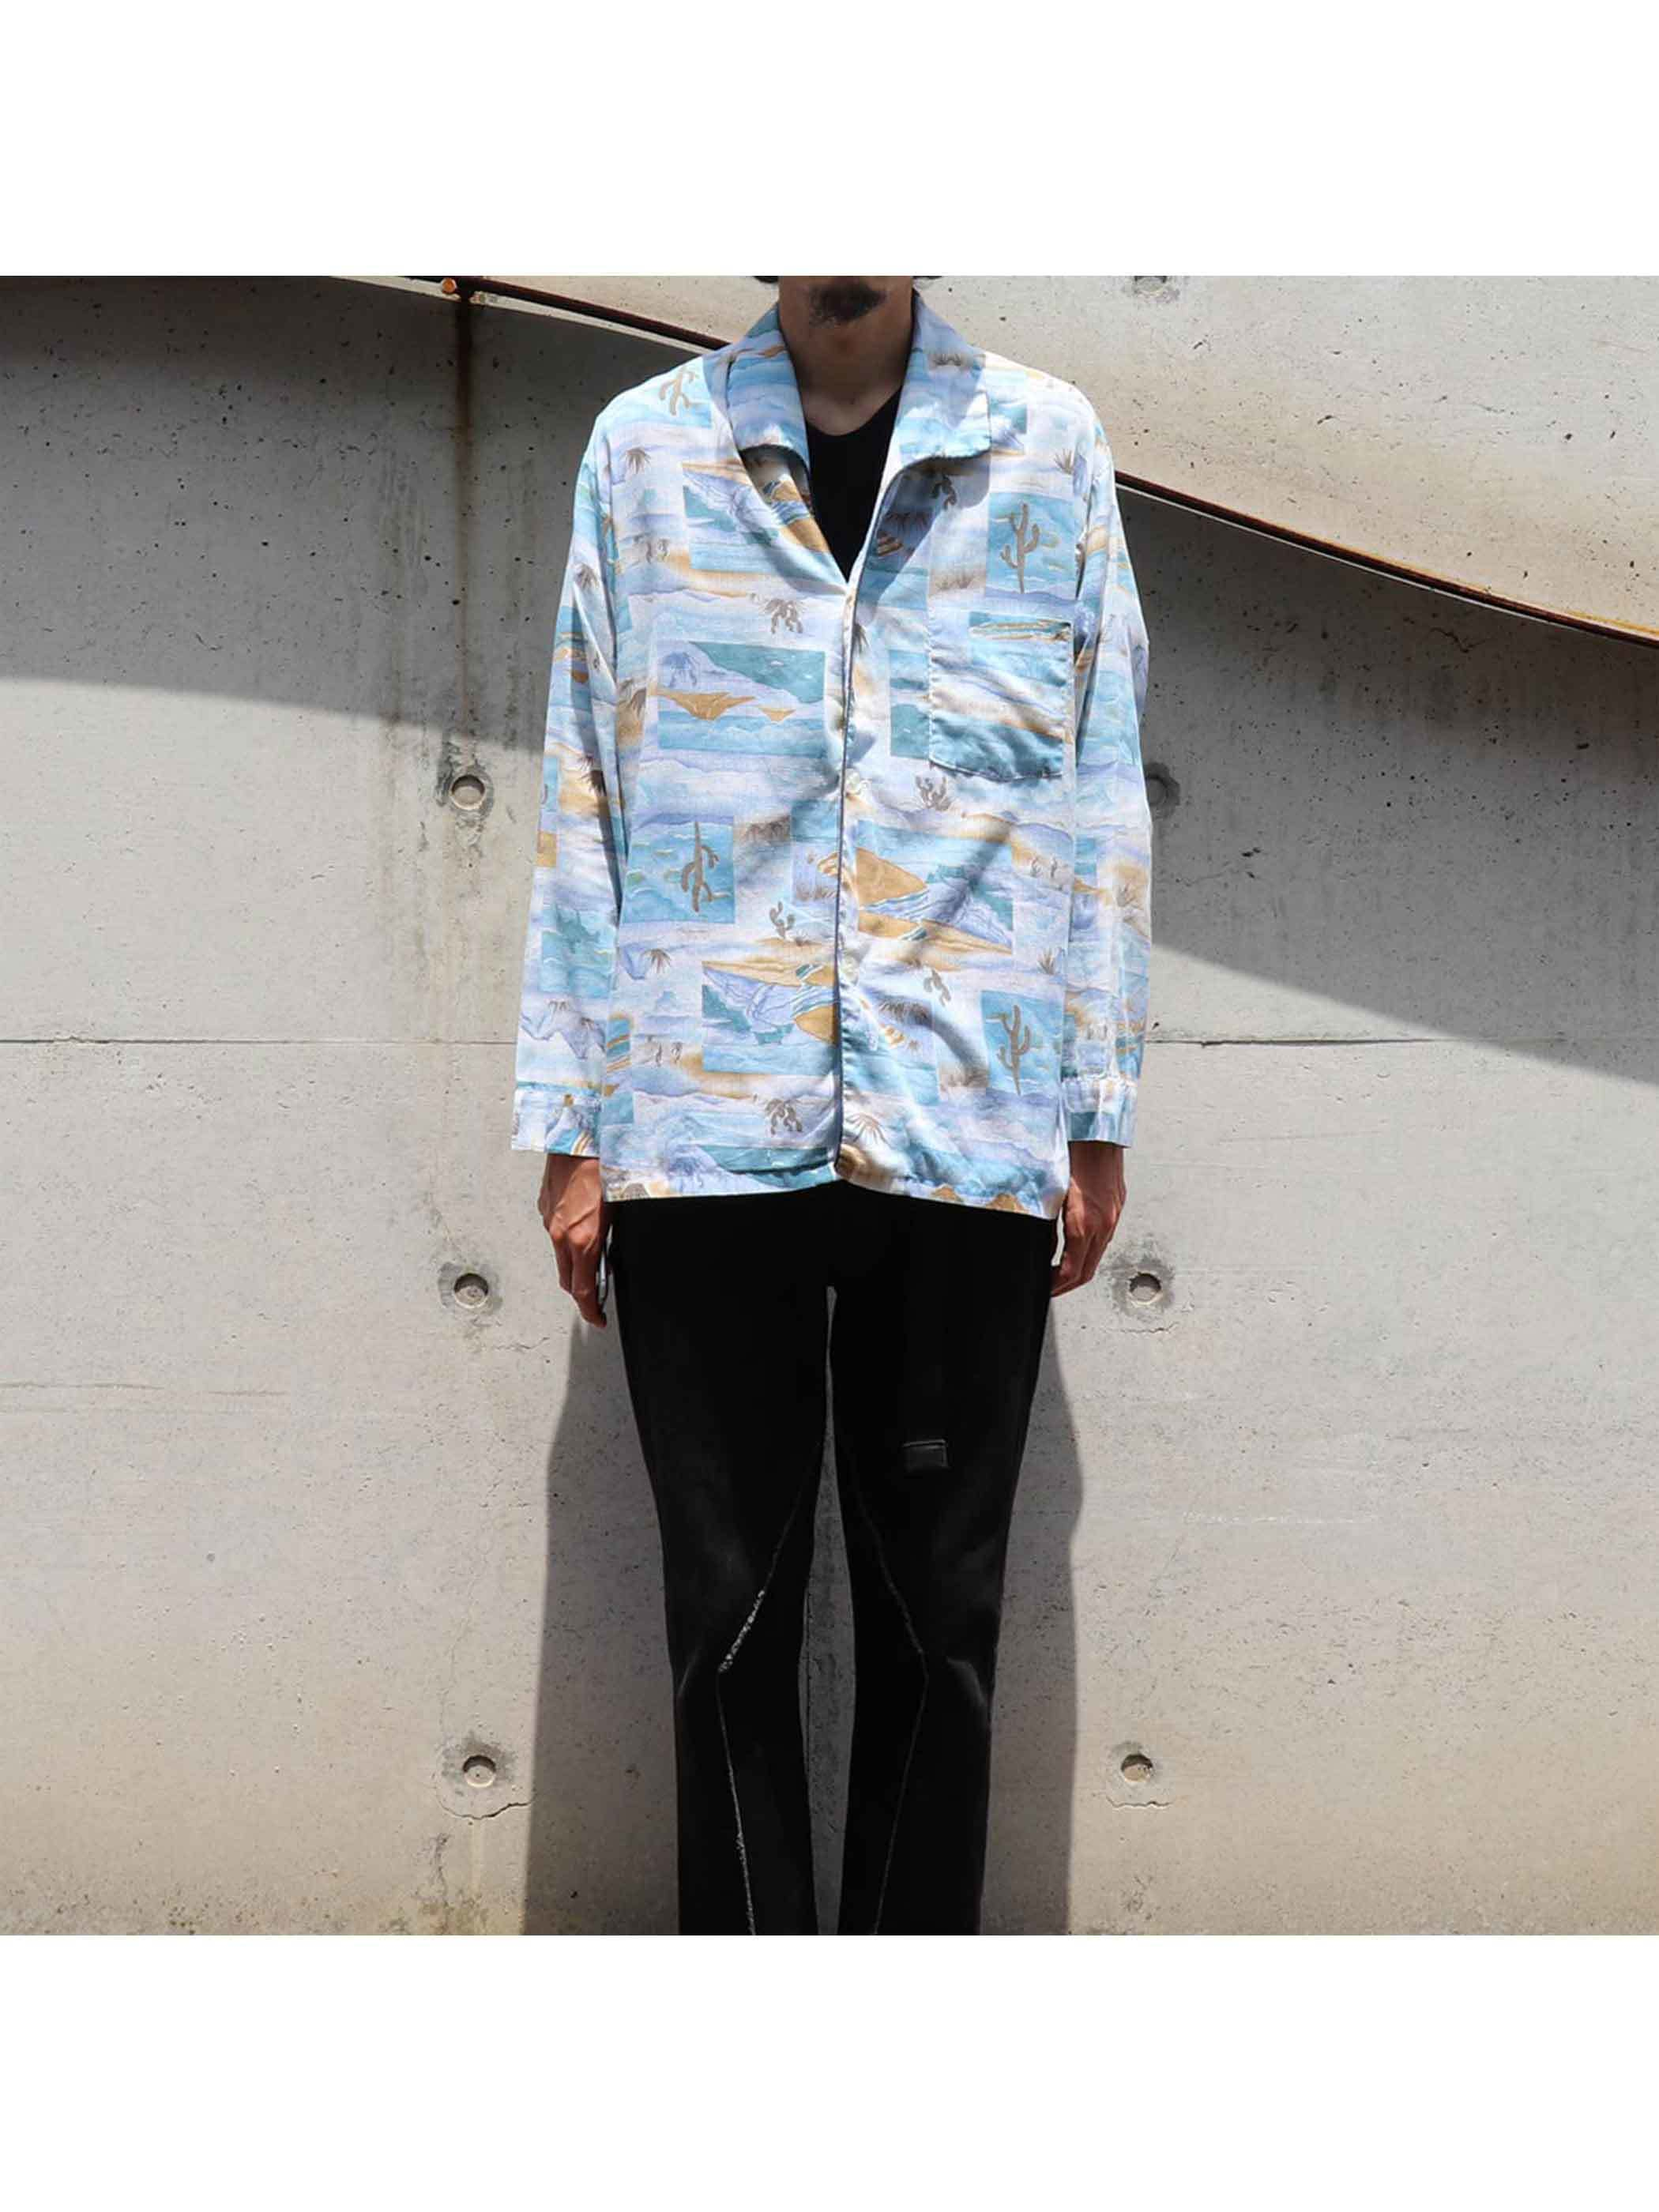 70's DESIGNER COLLECTION Landscape Pattern Pajama Shirt [M]